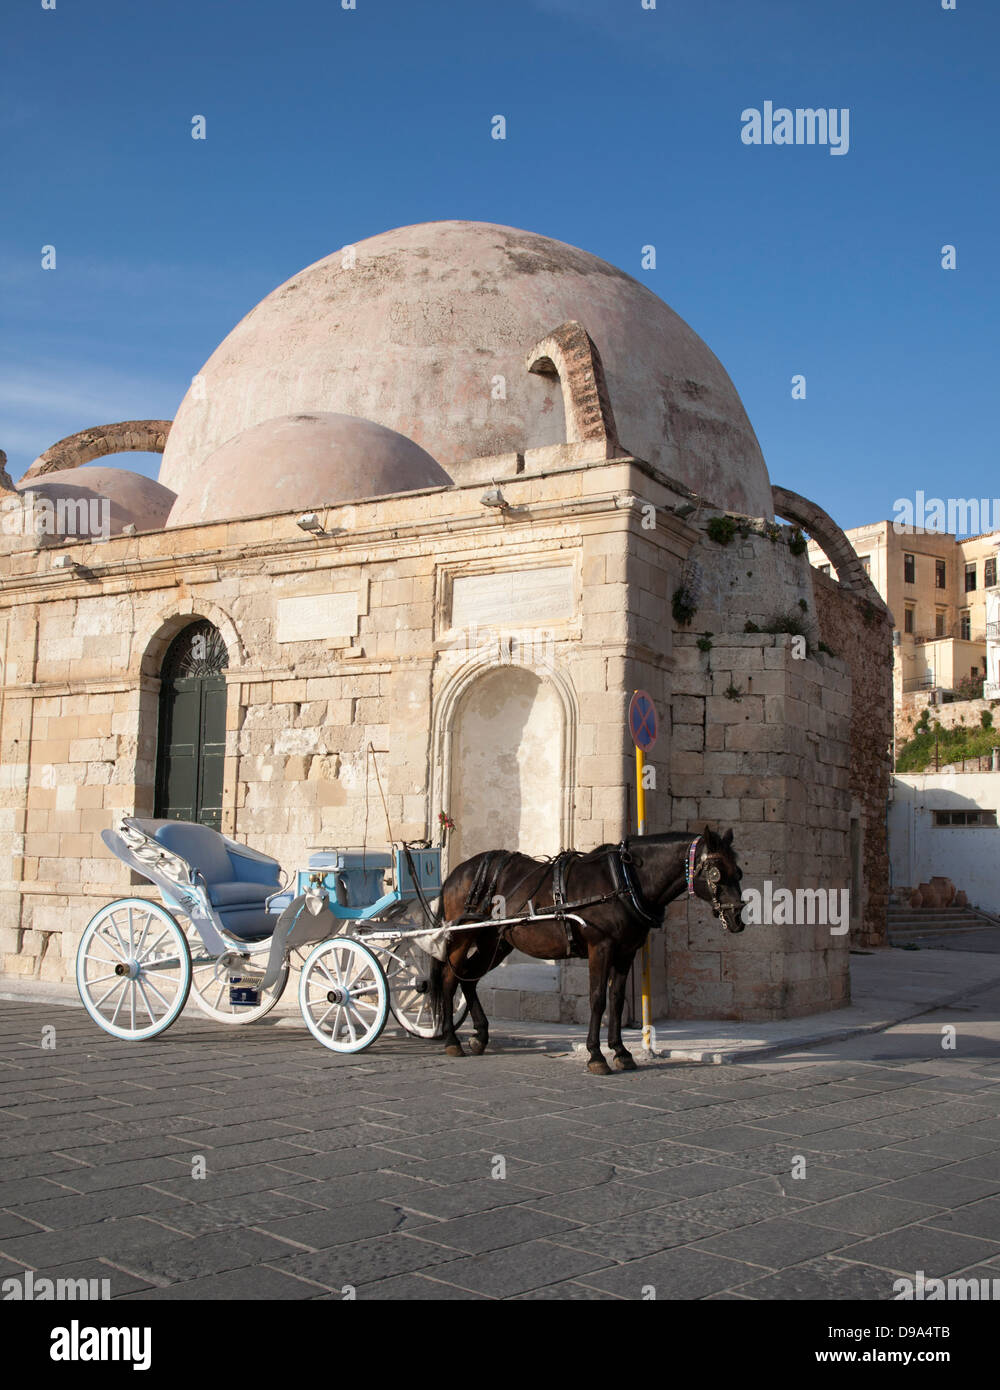 Horse drawn buggy beside the Turkish Yiali Tzami (aka Giali Tzamisi) Mosque at Venetian Harbour in old town Chania - Stock Image